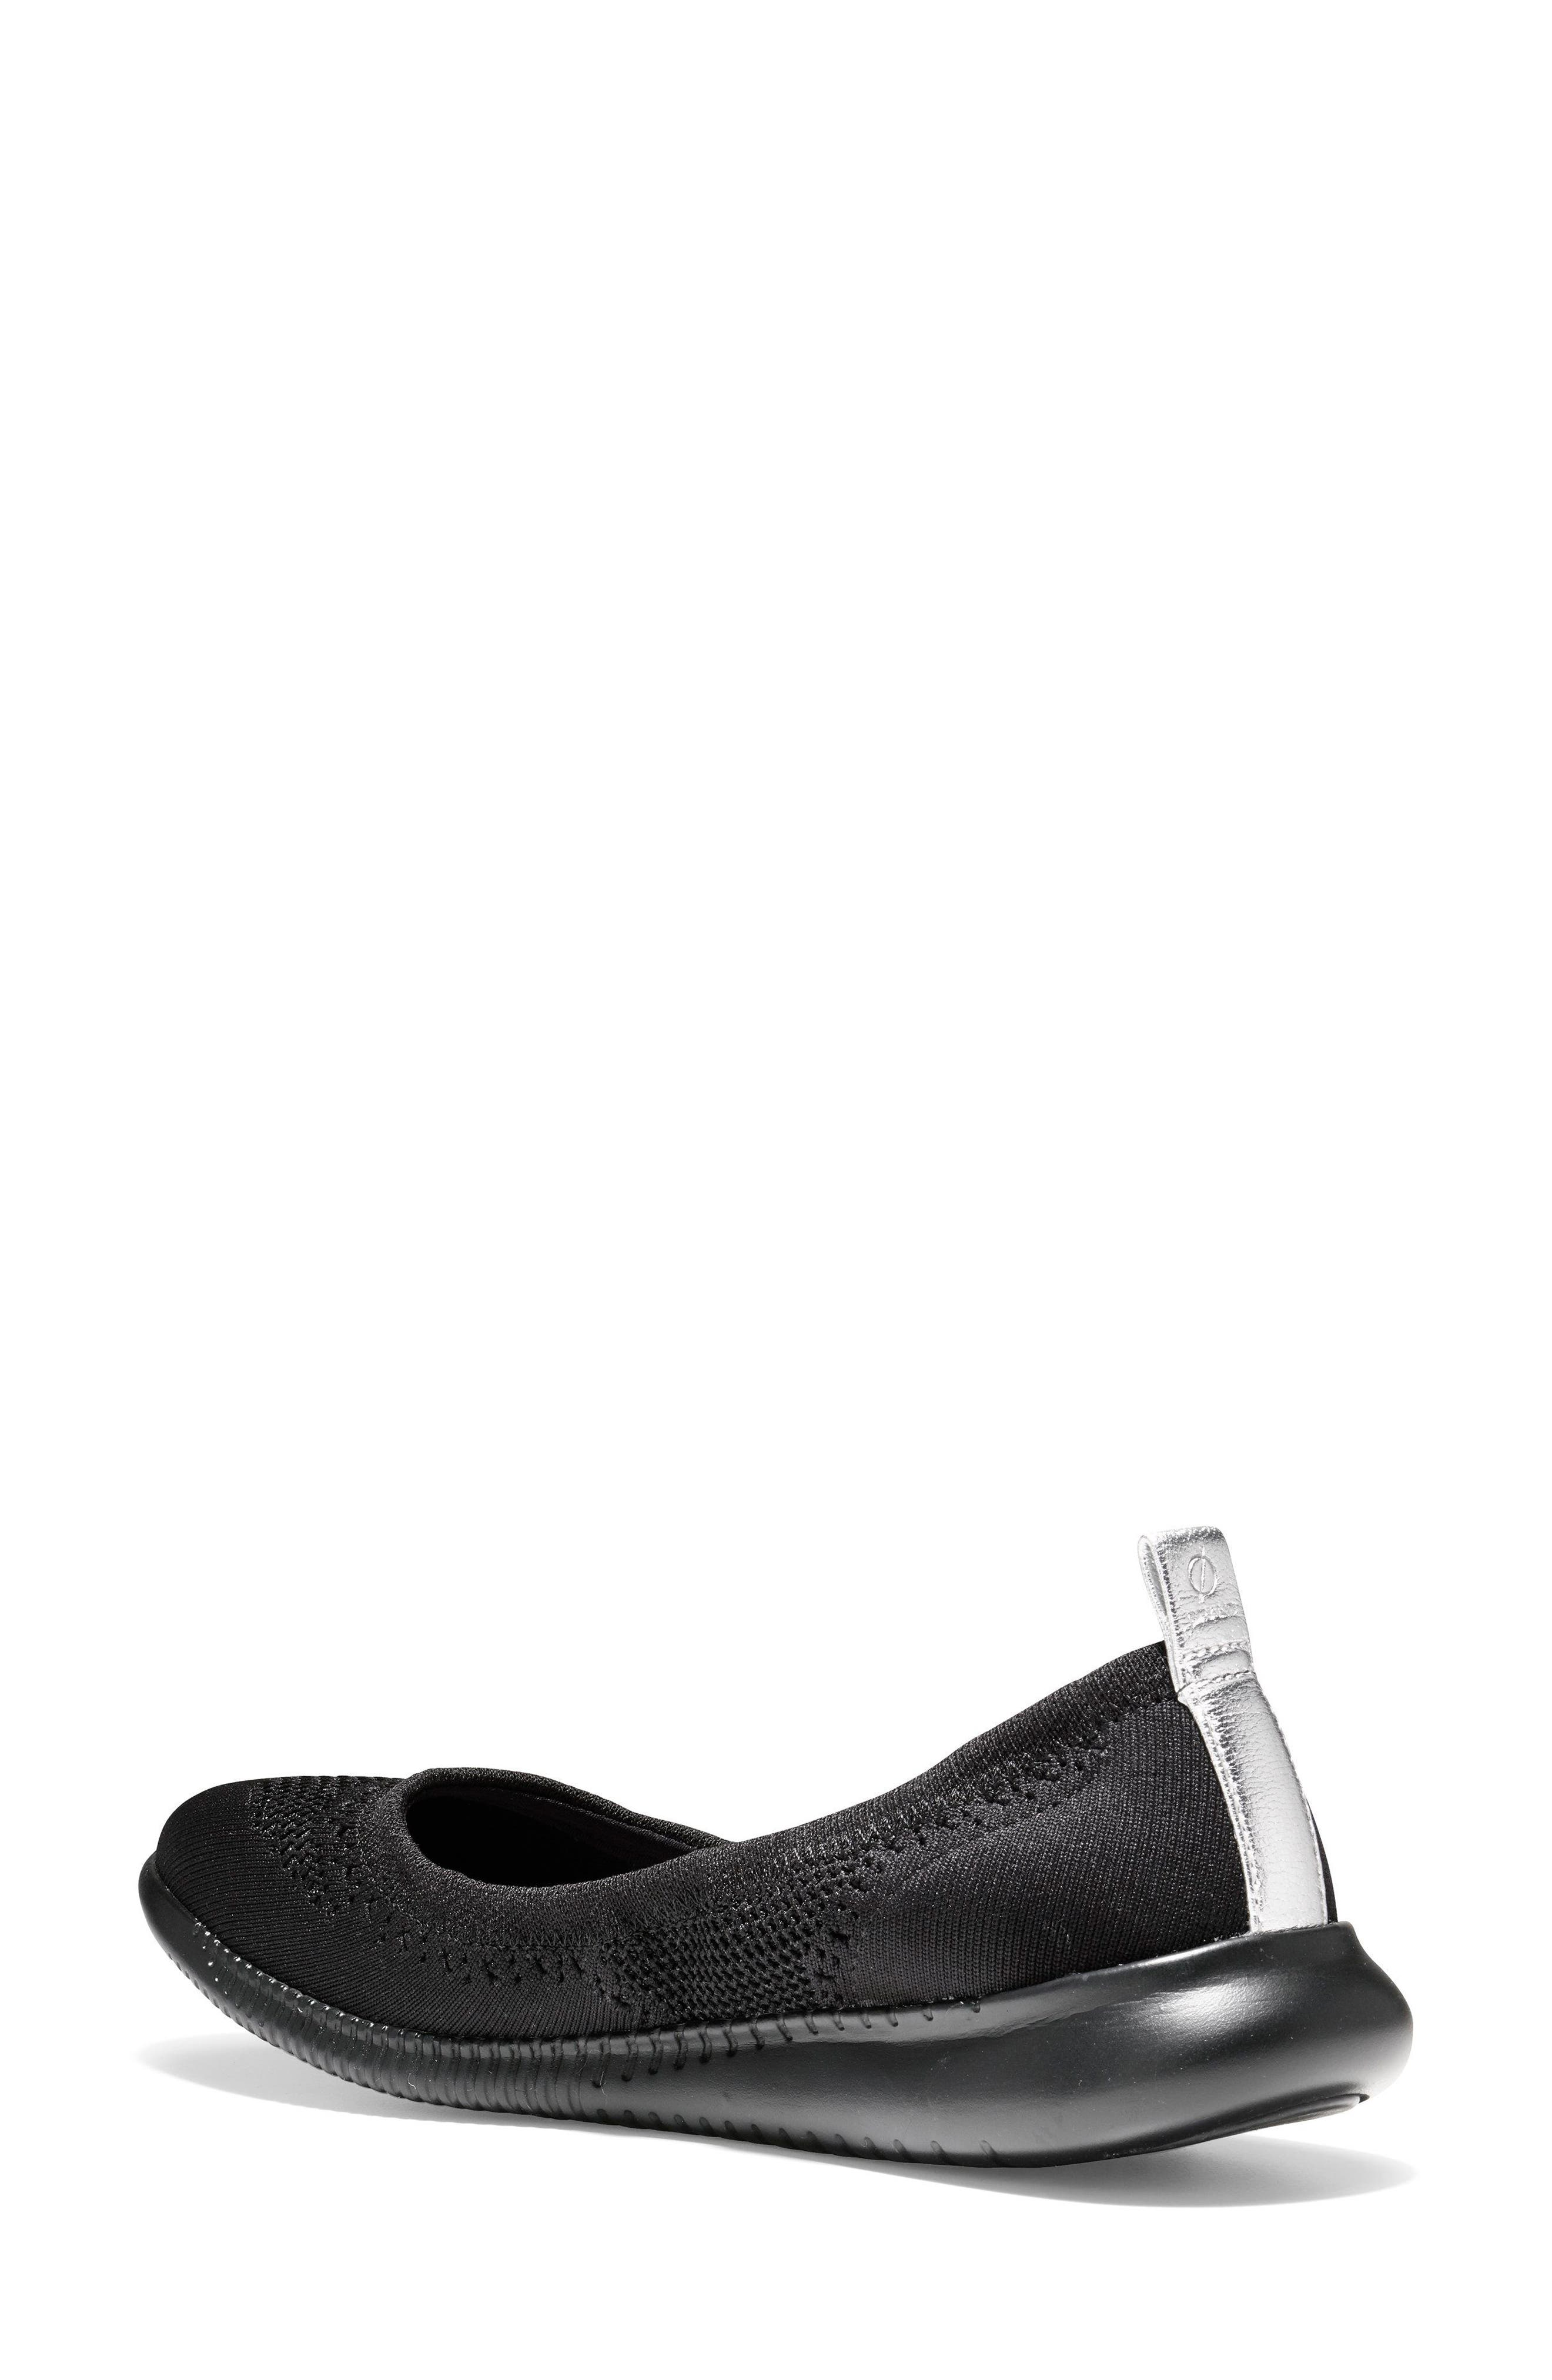 COLE HAAN, 2.ZERØGRAND Stitchlite Ballet Flat, Alternate thumbnail 2, color, BLACK FABRIC